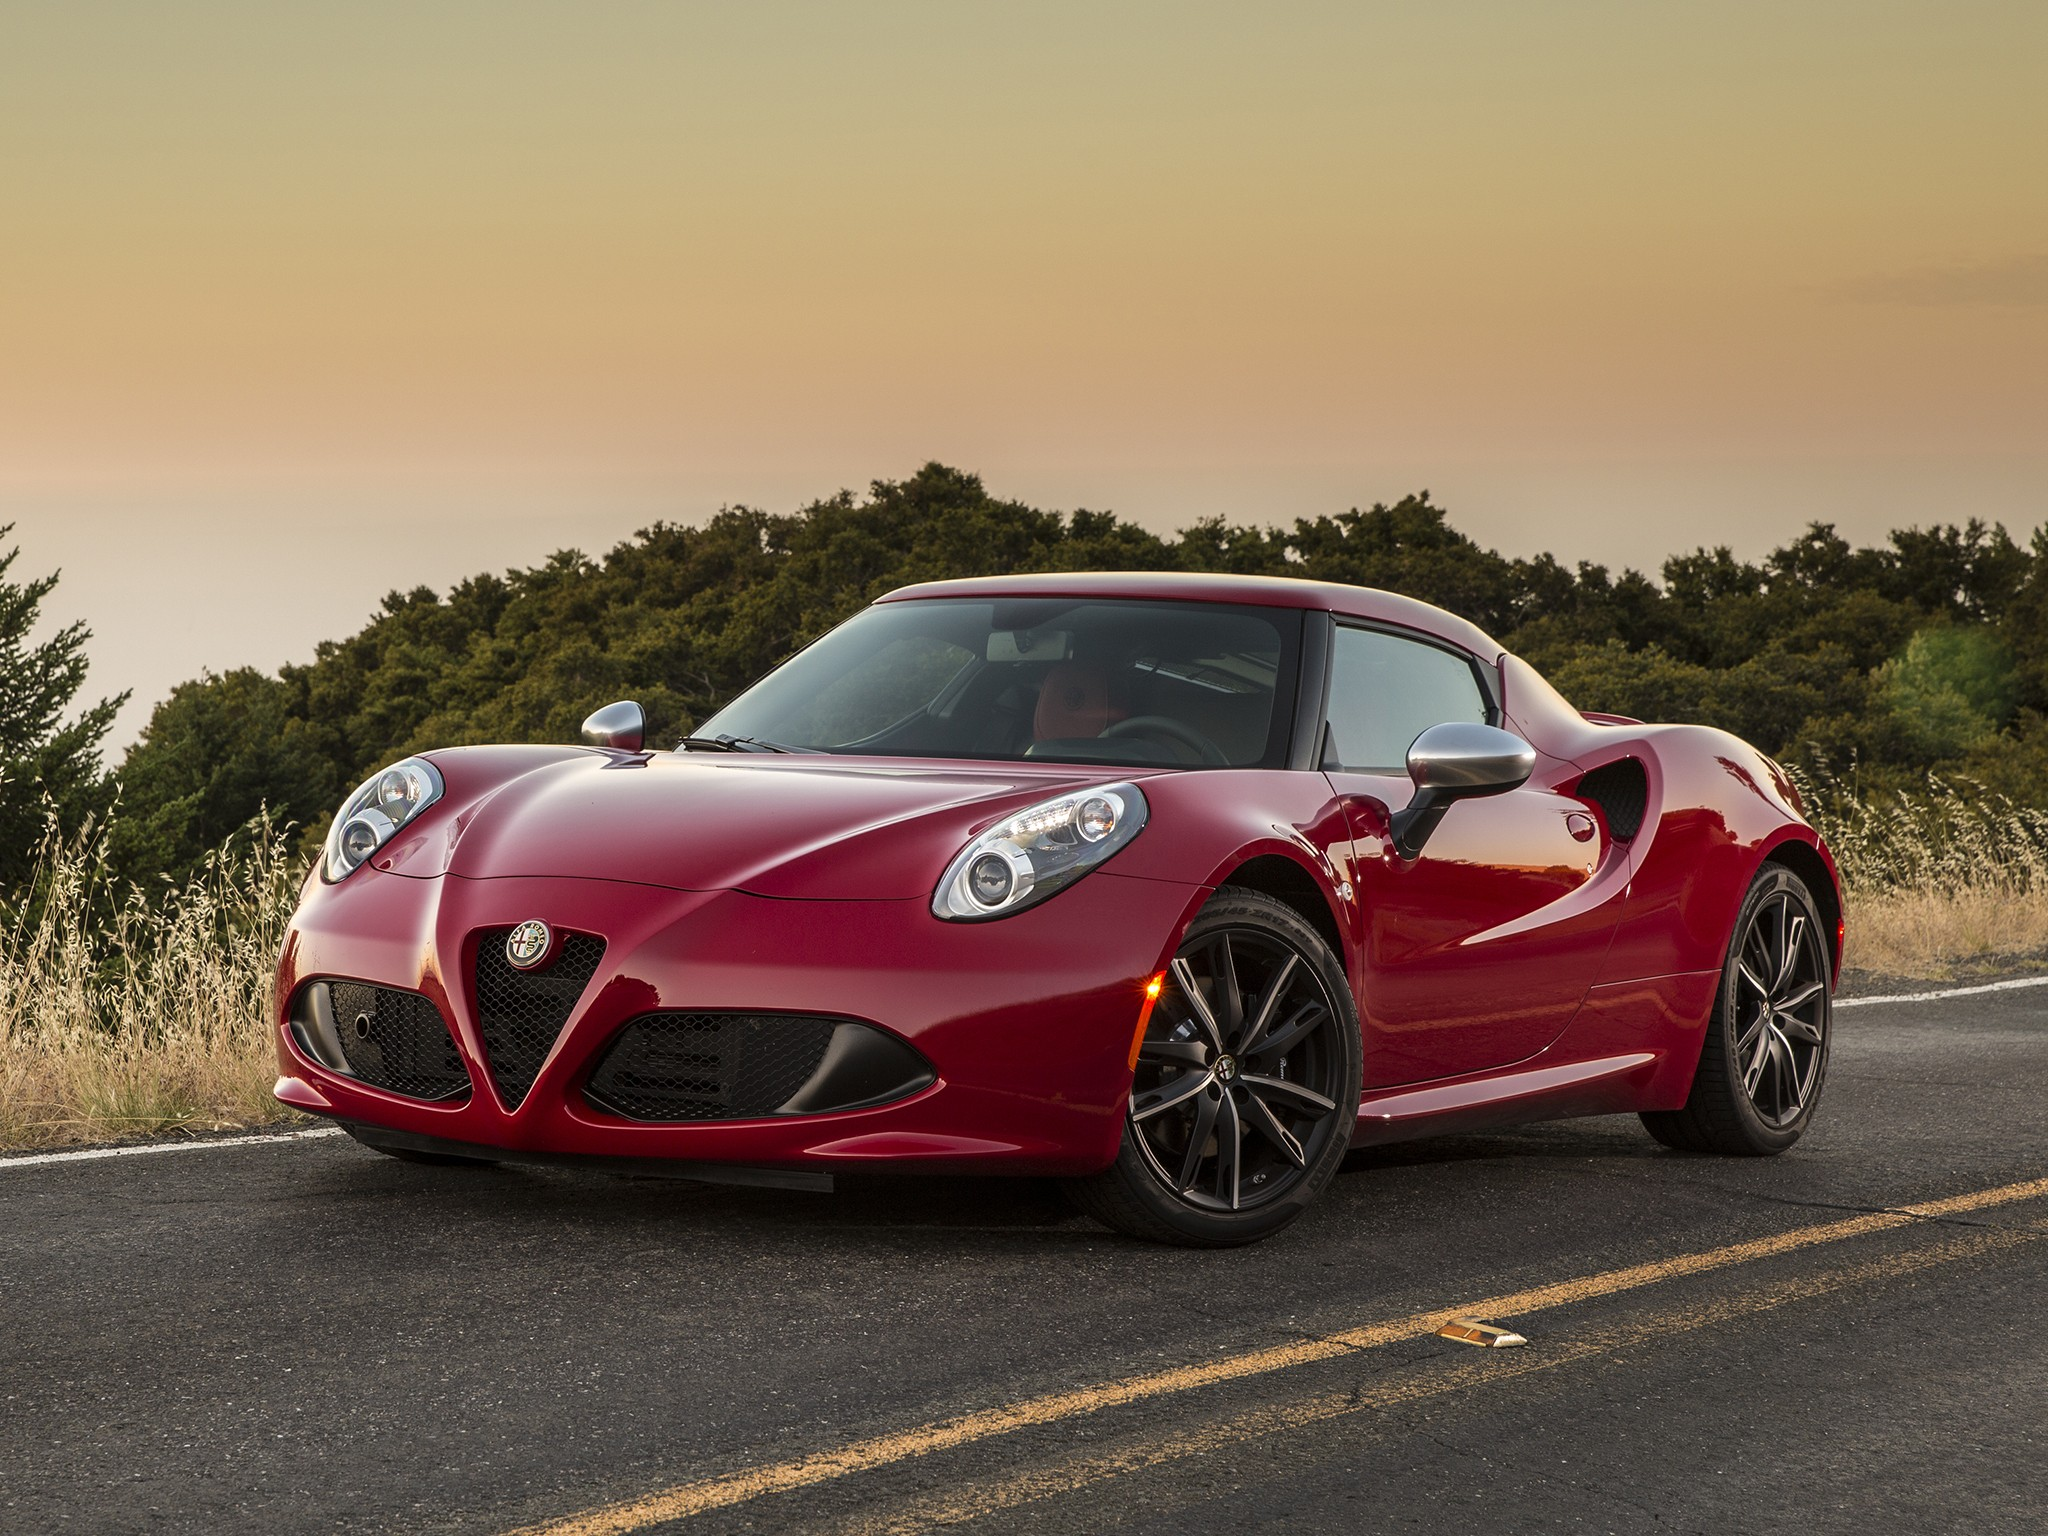 alfa romeo 4c 2013 2014 2015 2016 autoevolution. Black Bedroom Furniture Sets. Home Design Ideas